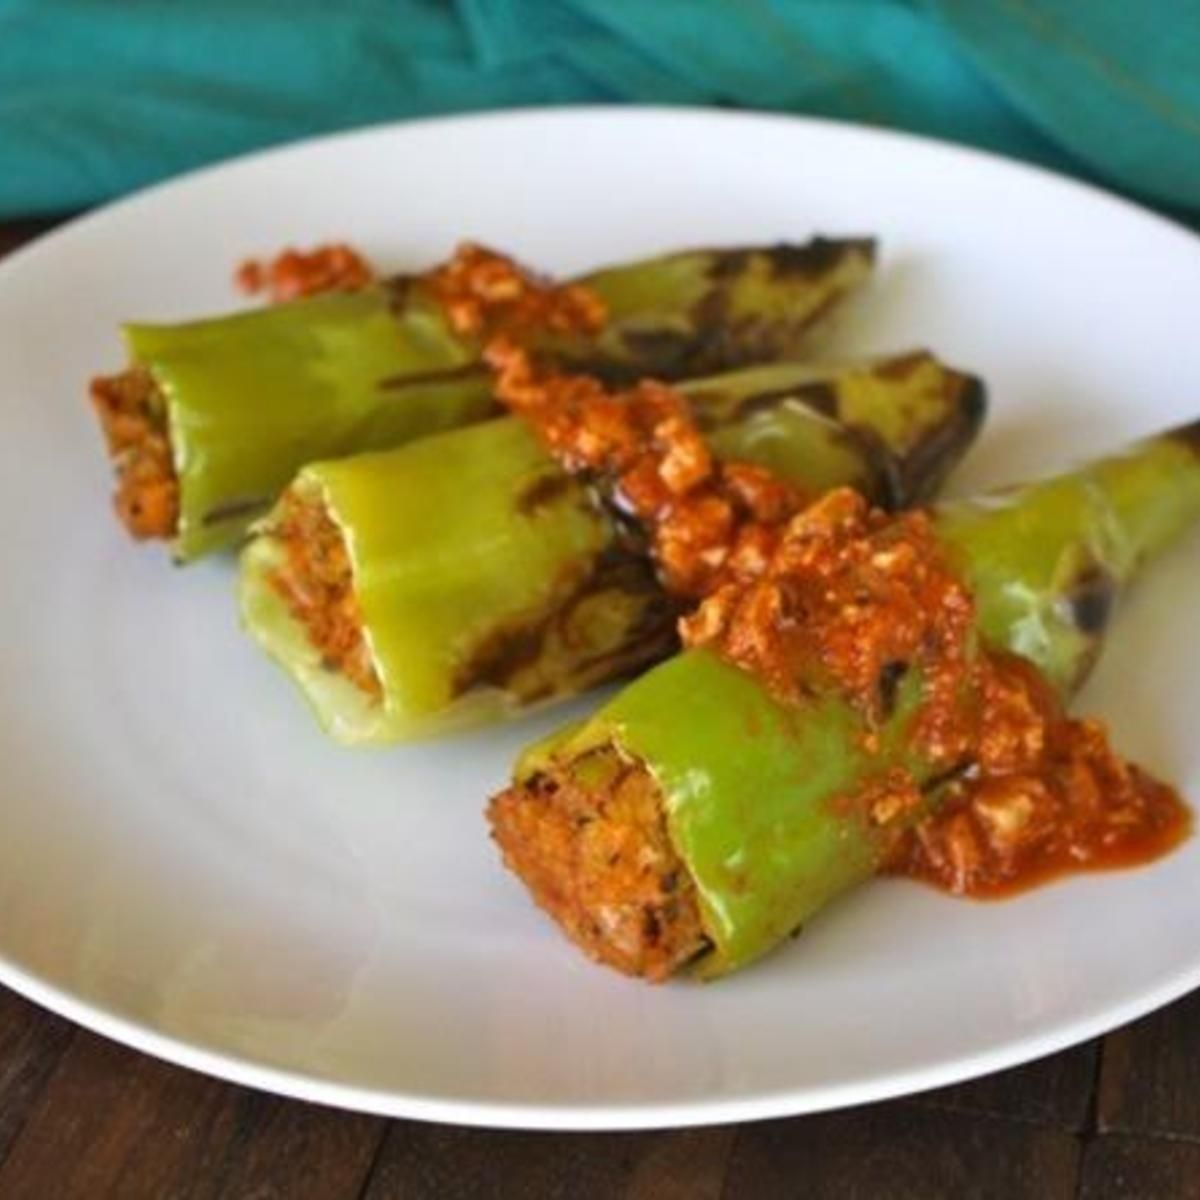 Stuffed And Grilled Hungarian Peppers Recipe Stuffed Peppers Peppers Recipes Stuffed Banana Peppers